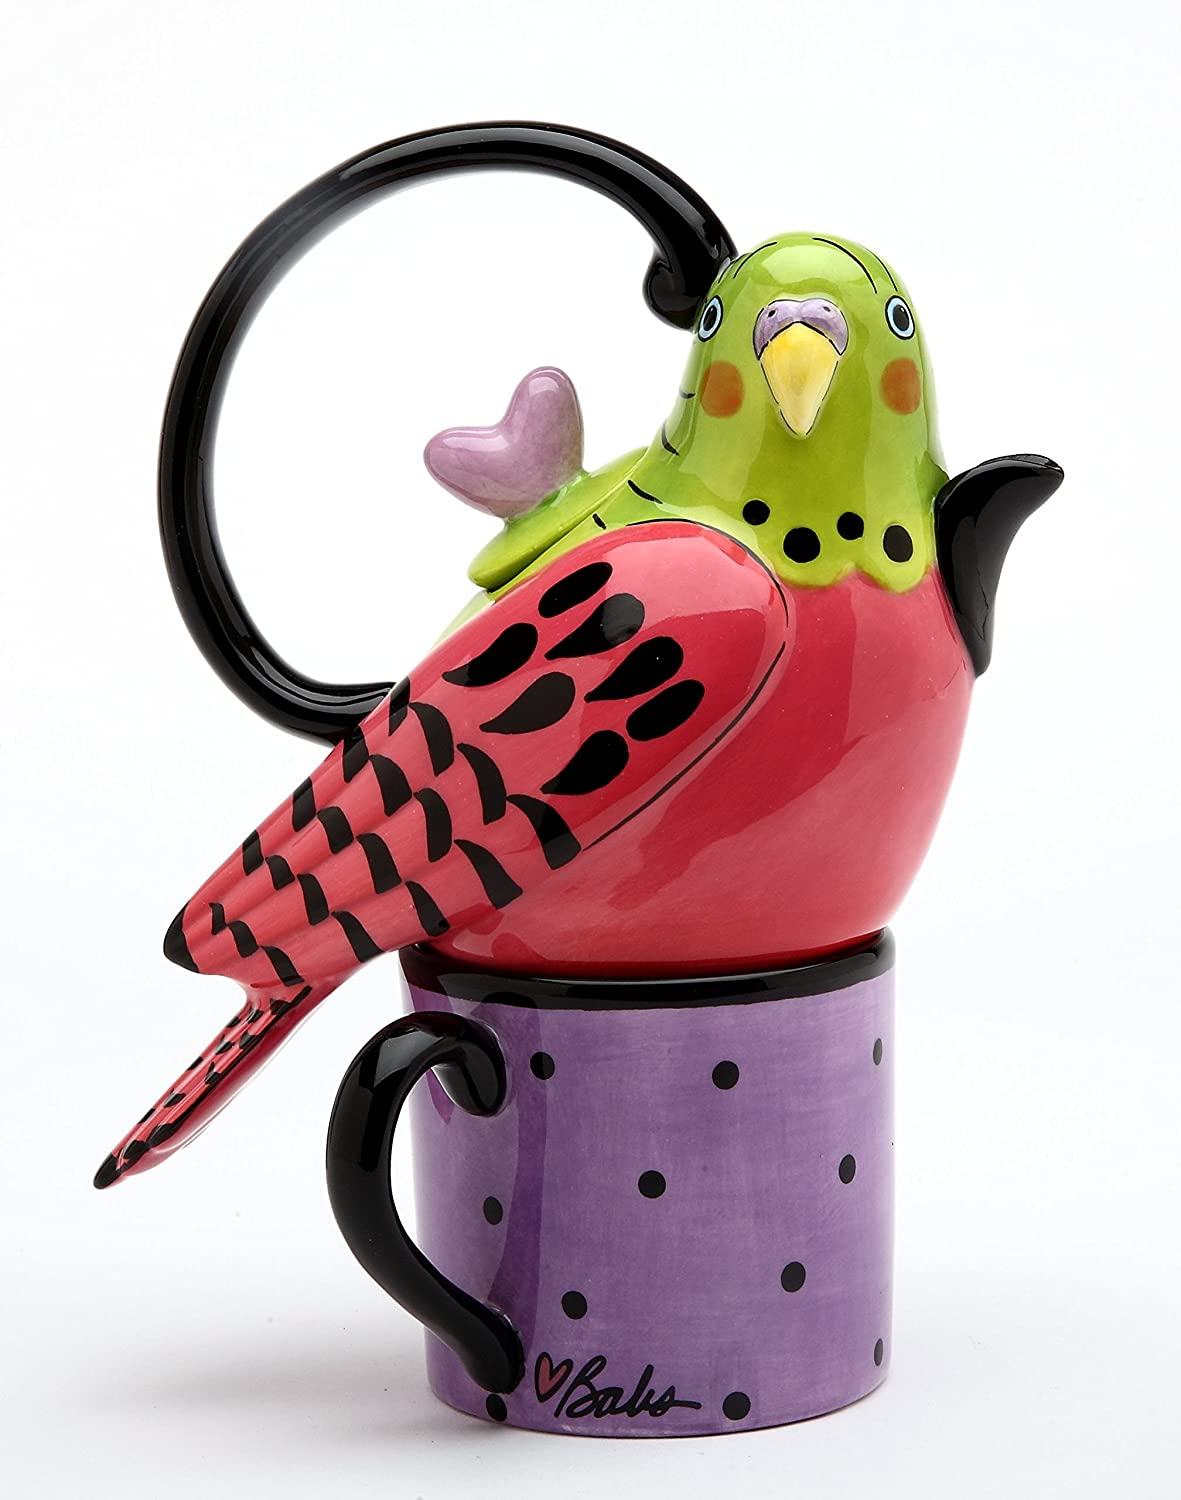 Cosmos Gifts 61540 Fine Ceramic Flights Of Fancy: Red Parakeet Tea For One (Teapot with tea Cup) Set by Babs, 7-1/4' H